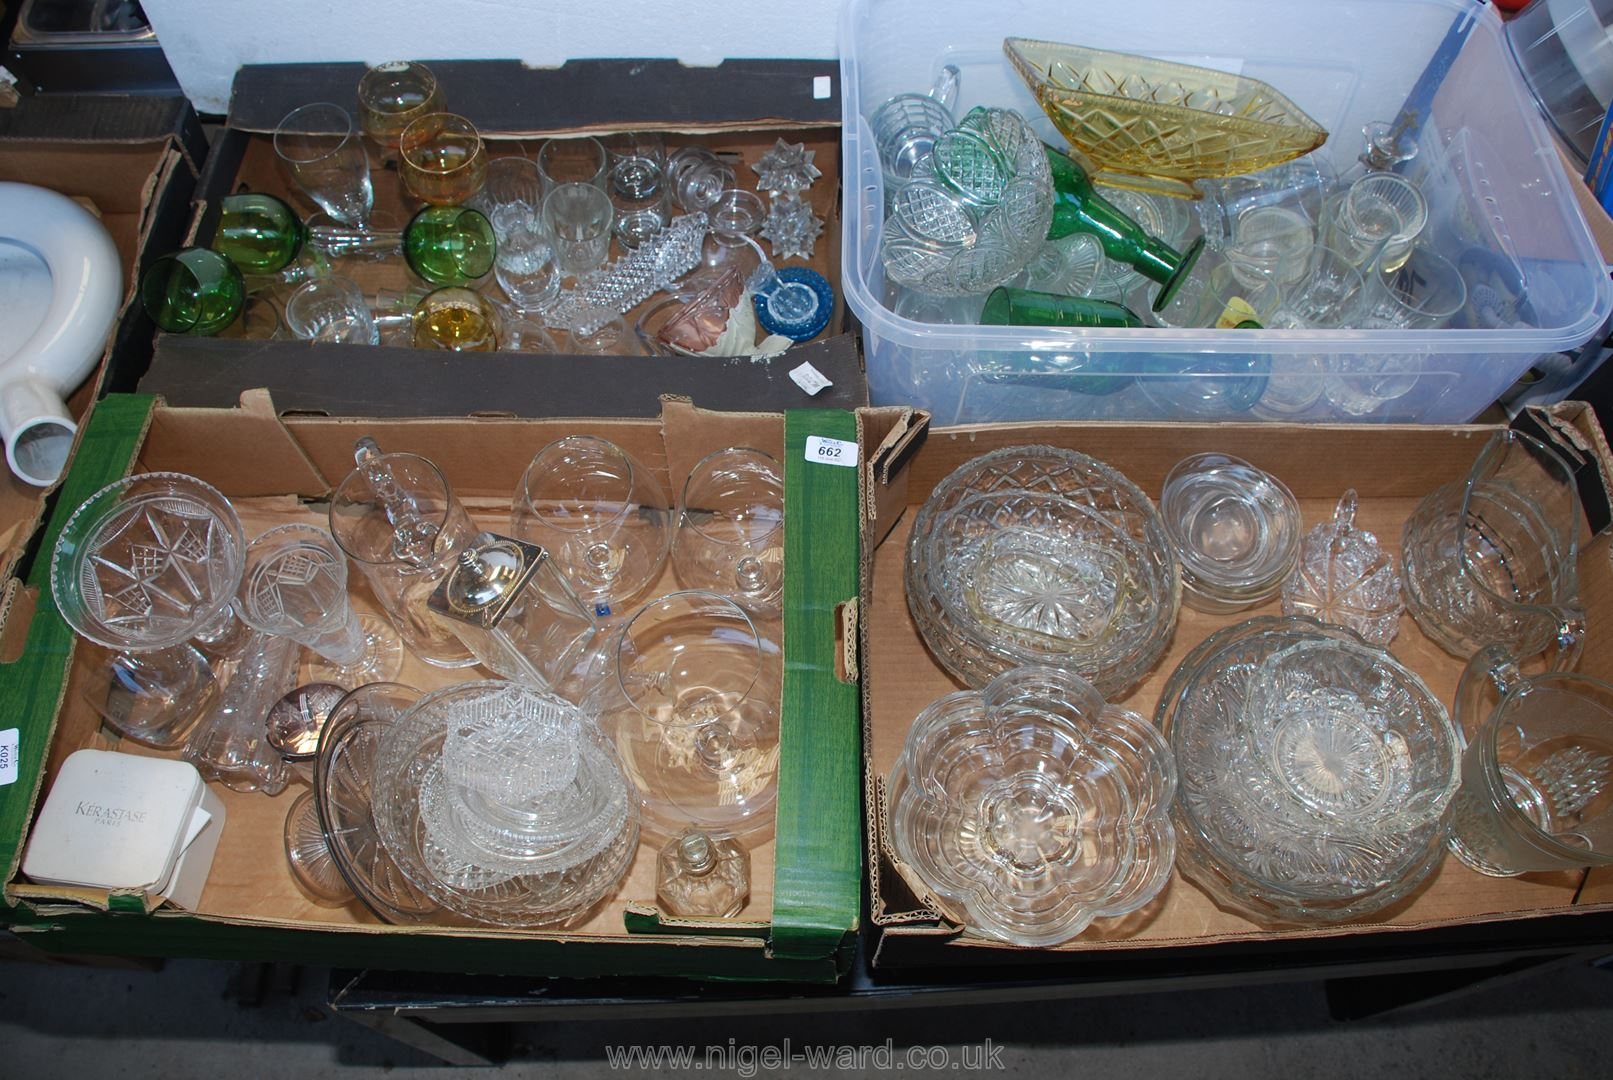 Four boxes of glassware including jugs, sundae dishes etc.